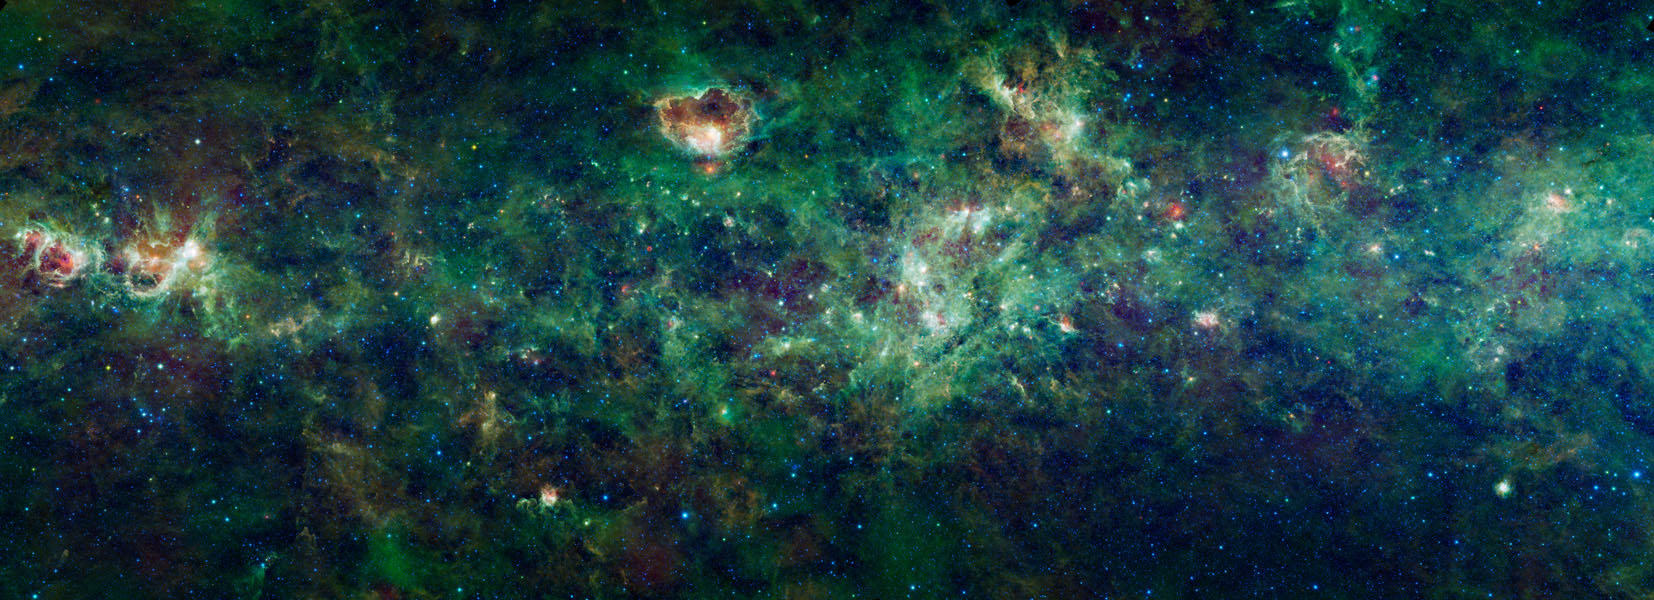 This enormous section of the Milky Way galaxy is a mosaic of images from NASA's Wide-field Infrared Survey Explorer. The constellations Cassiopeia and Cepheus are featured in this 1,000-square degree expanse.